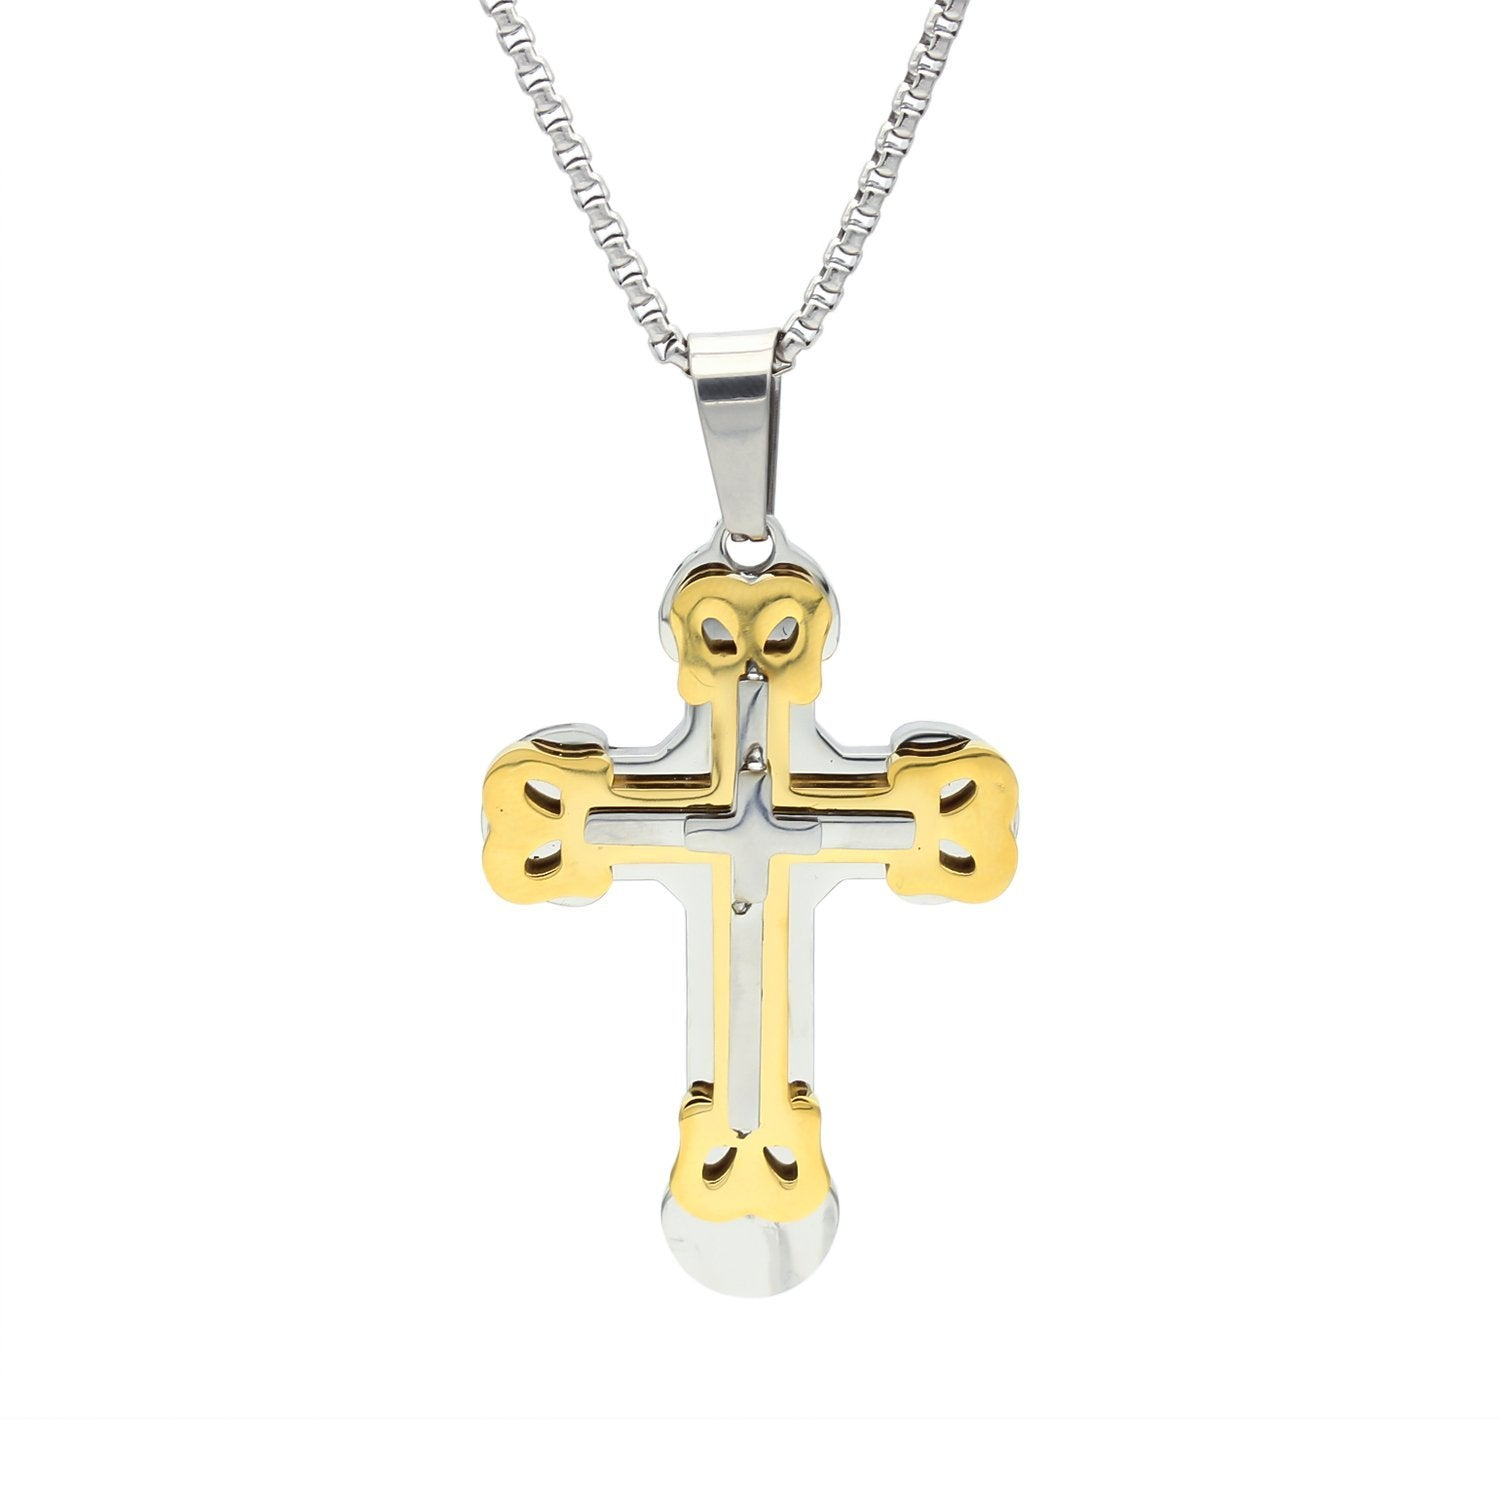 Stainless Steel Elaborate Design Cross Pendant